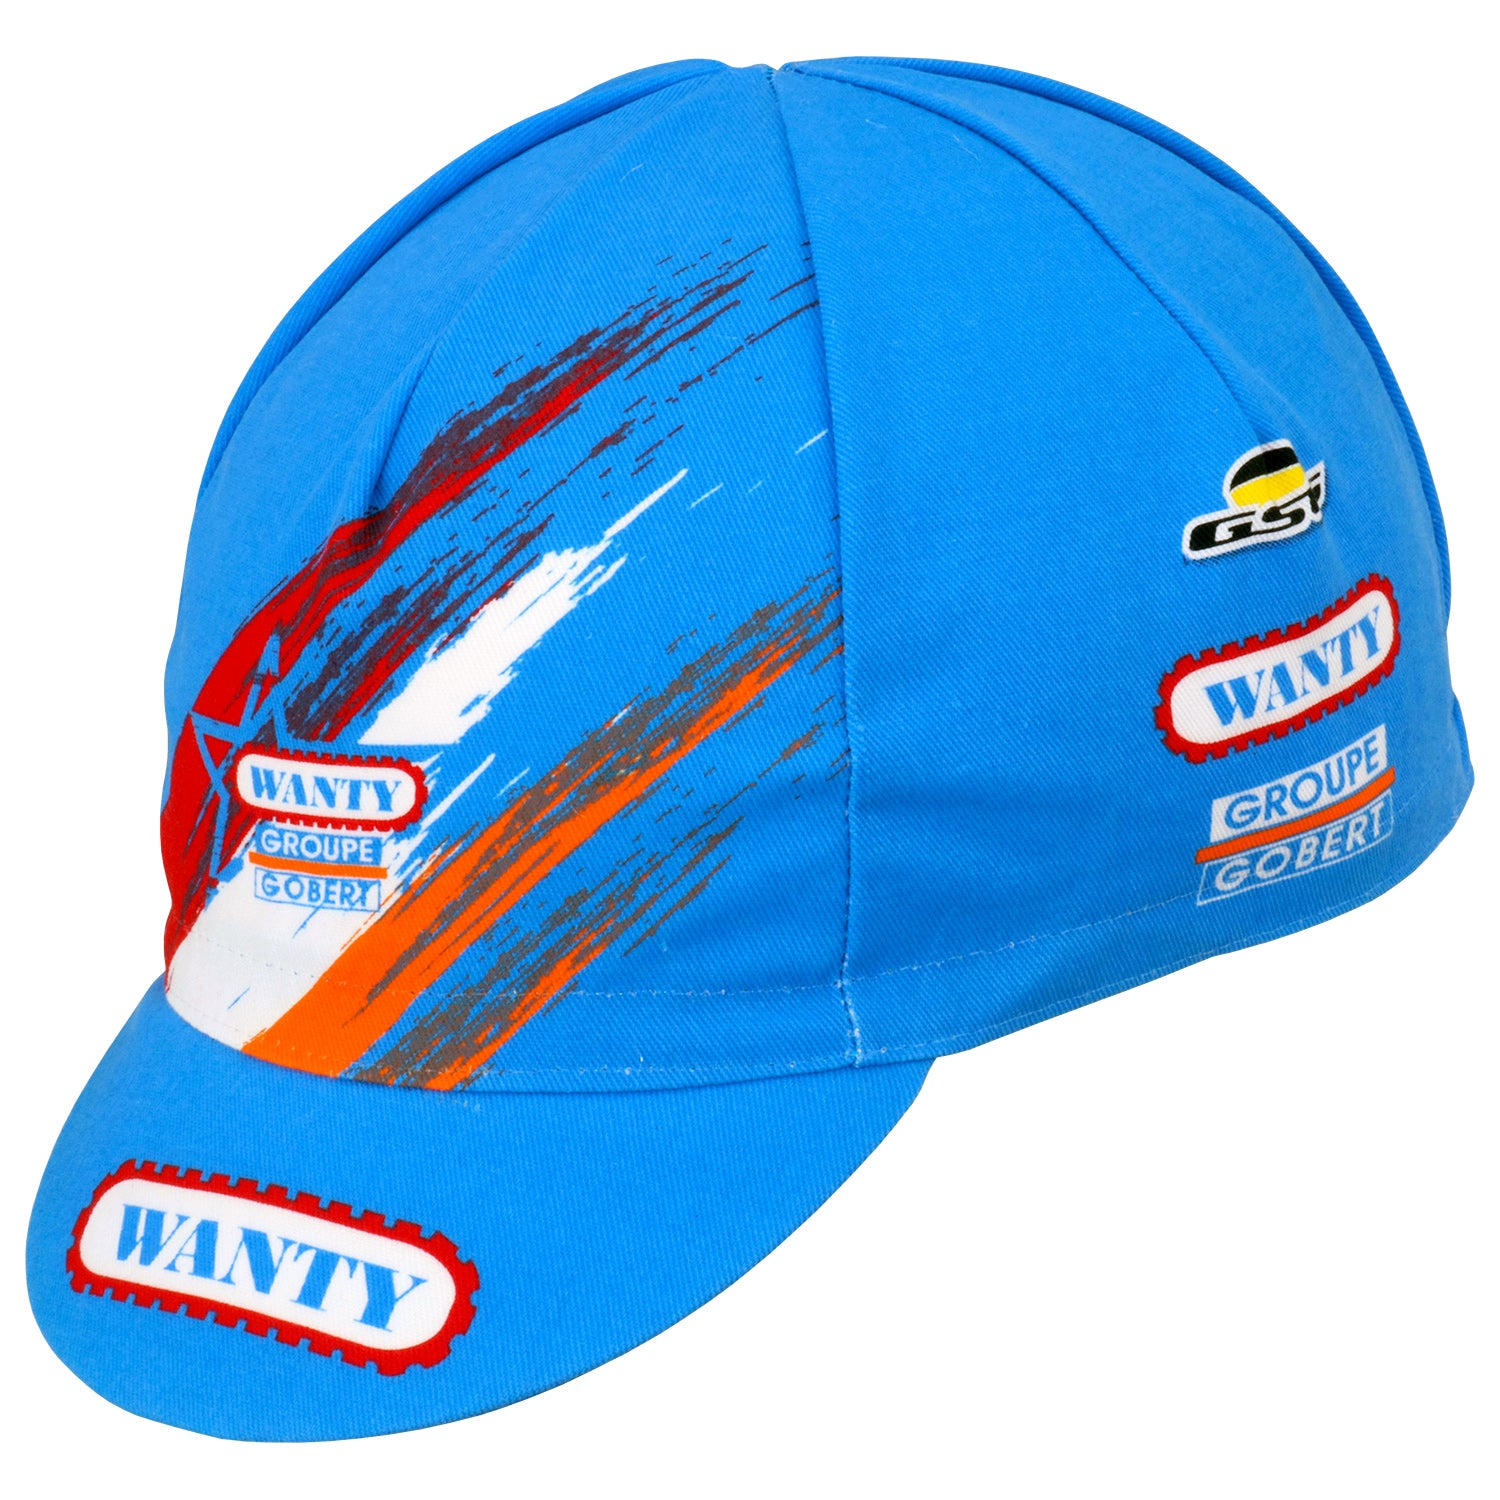 Wanty Groupe Gobert 2014 Cotton Cycling Cap